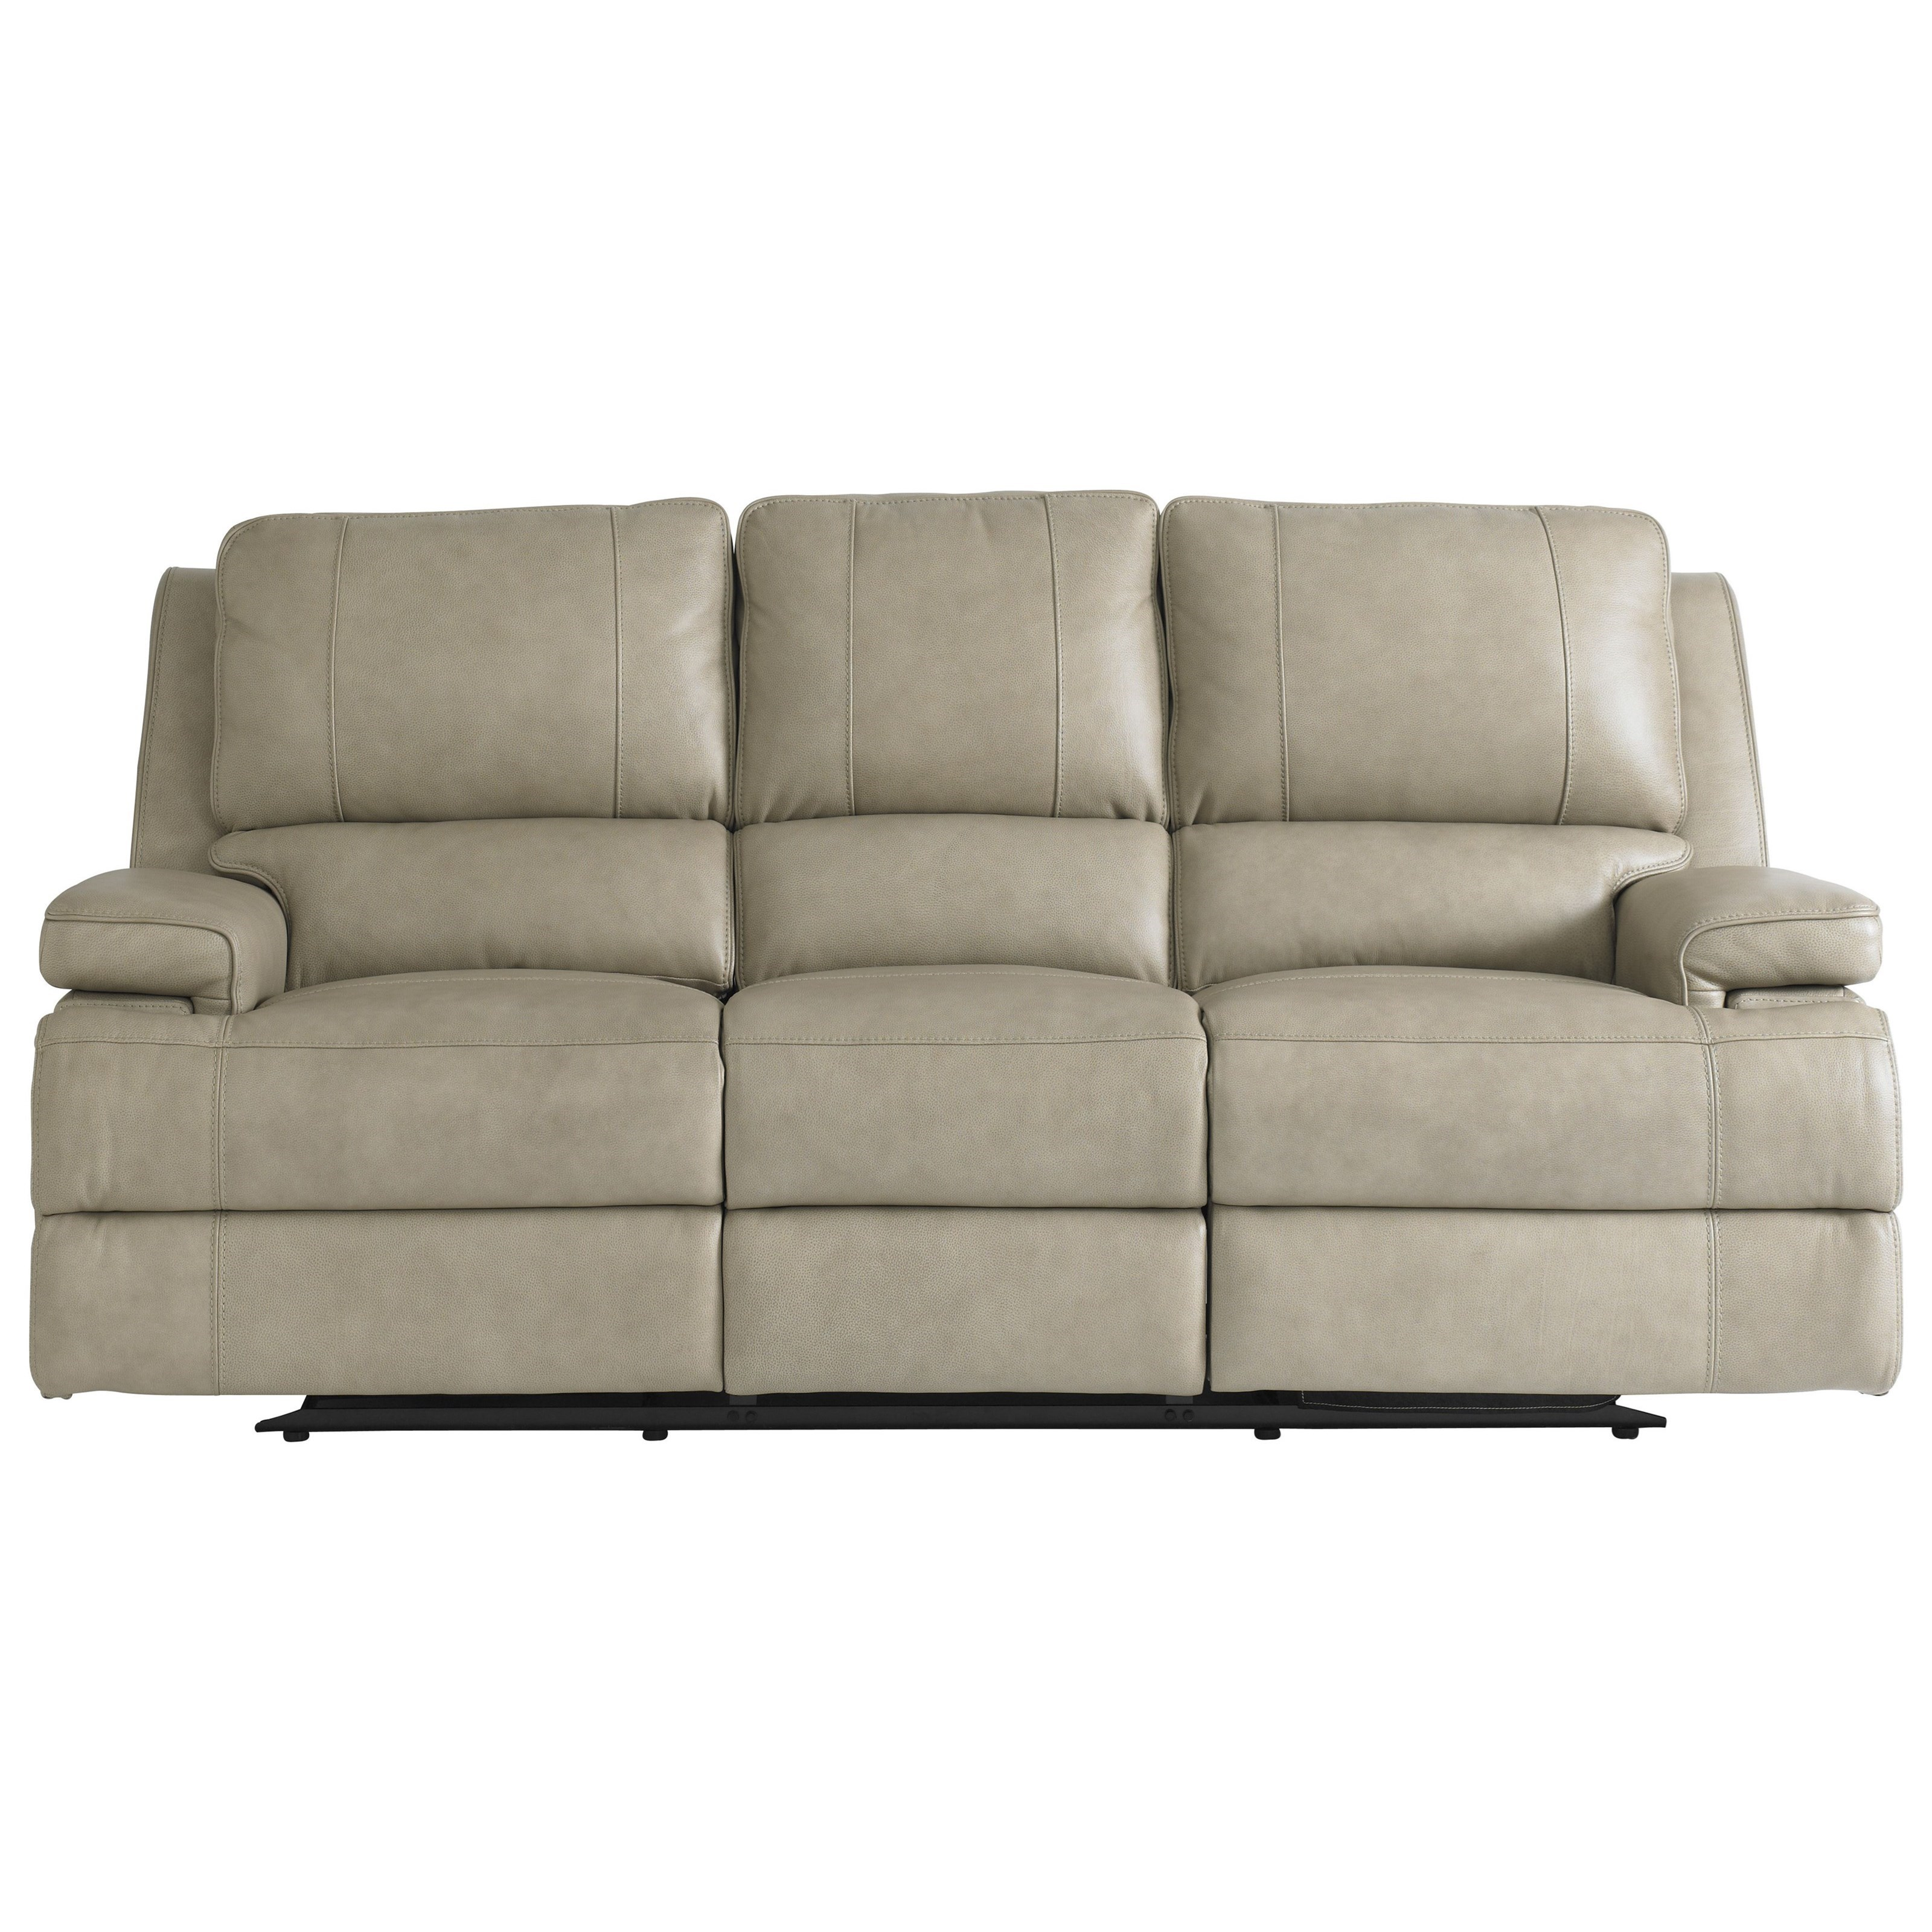 Bassett Parker Club Level 3729 P62f Double Reclining Sofa With Power Headrests Becker Furniture Reclining Sofas